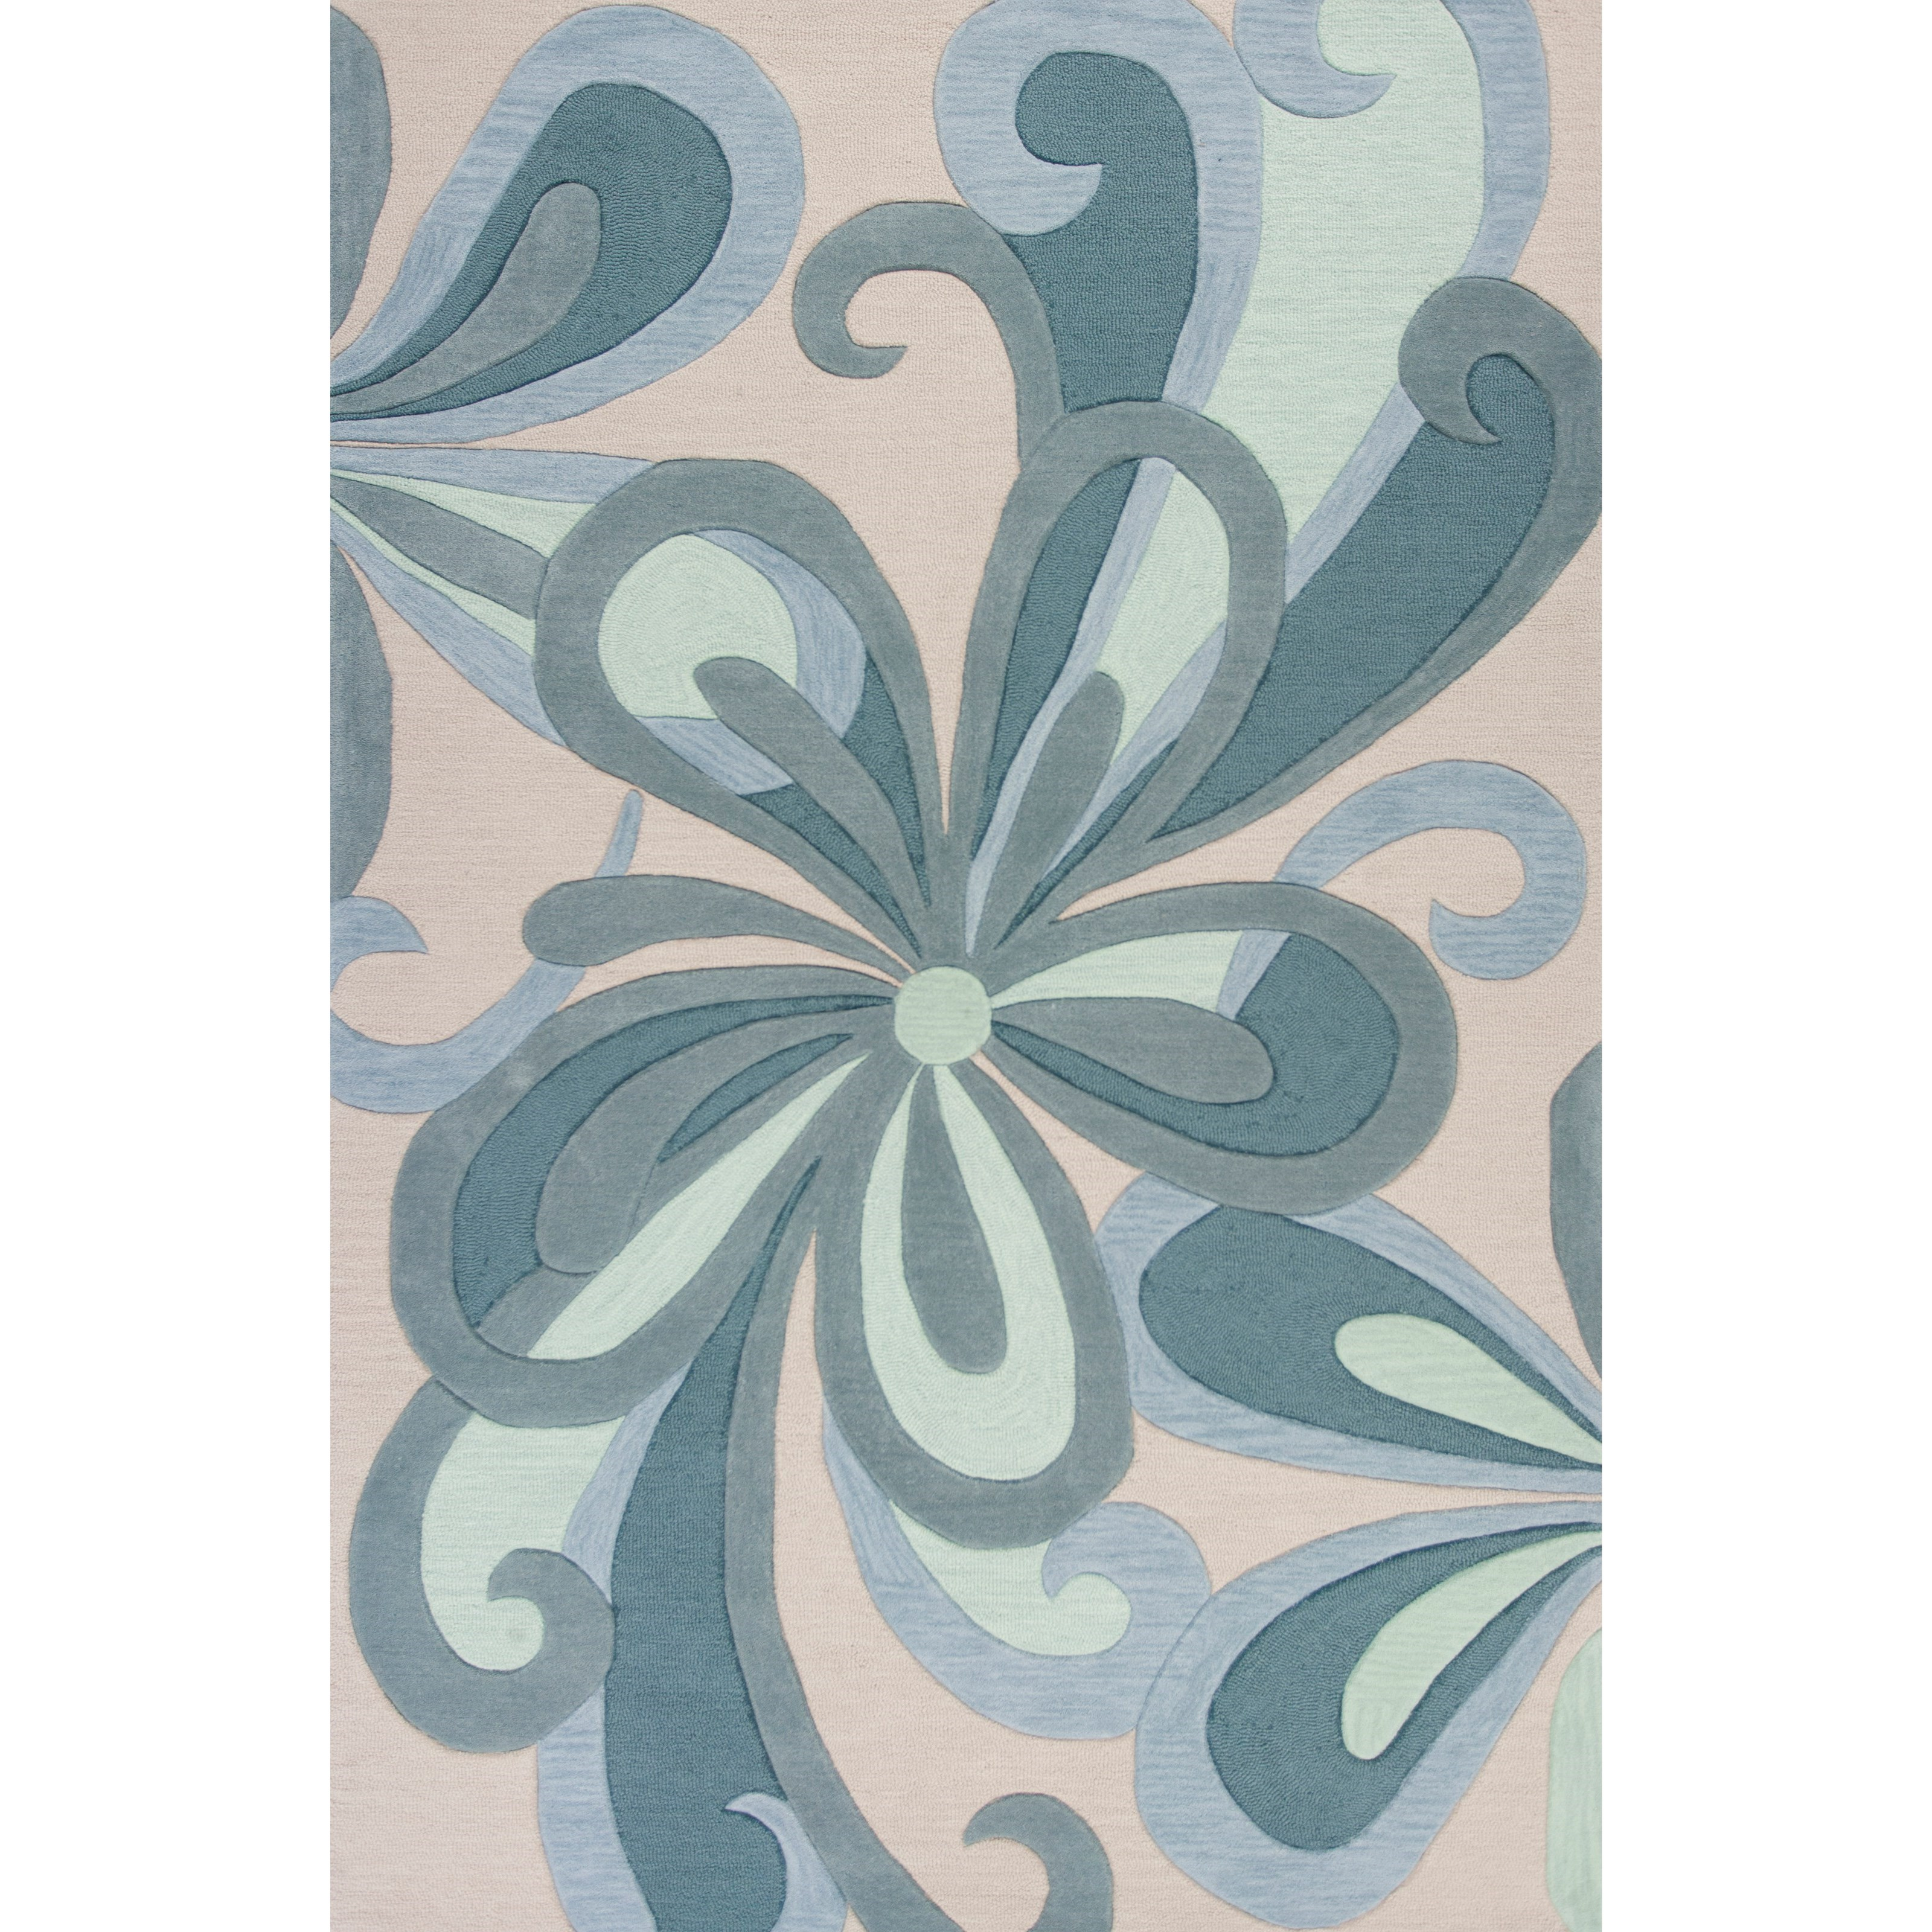 "Milan 5'3"" X 3'3"" Area Rug by Kas at Wilson's Furniture"